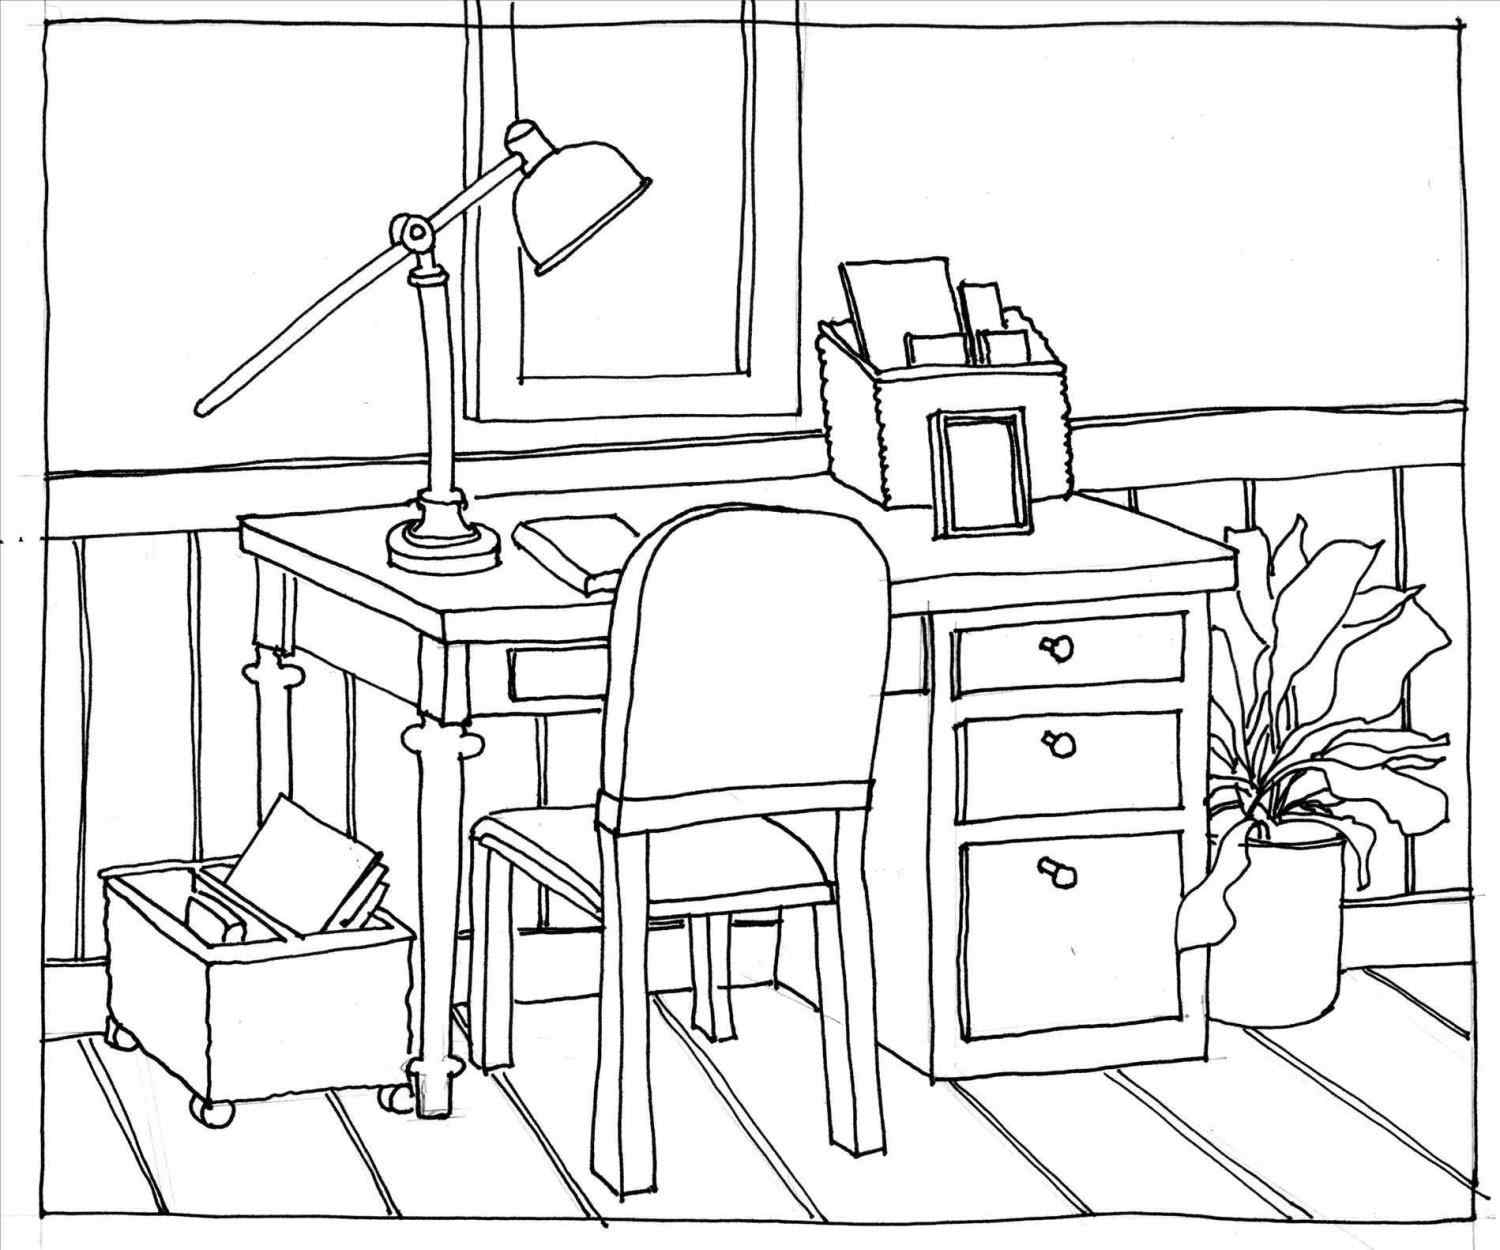 1500x1250 Ikea John A Furniture Design Sketches Png Studio Apartment Layout